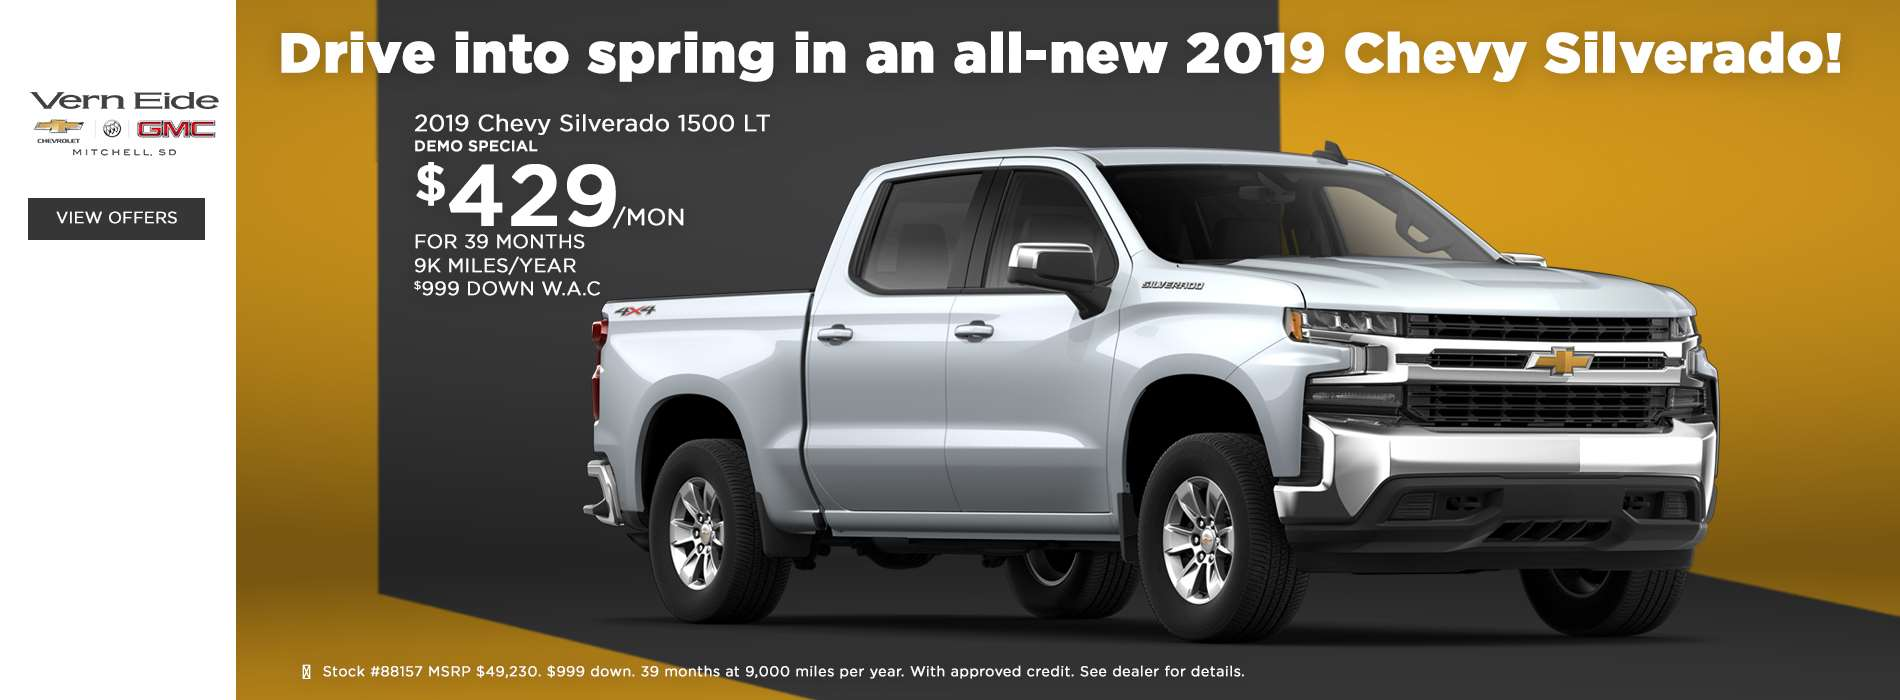 GM - Offers Slide 3 - March 2019